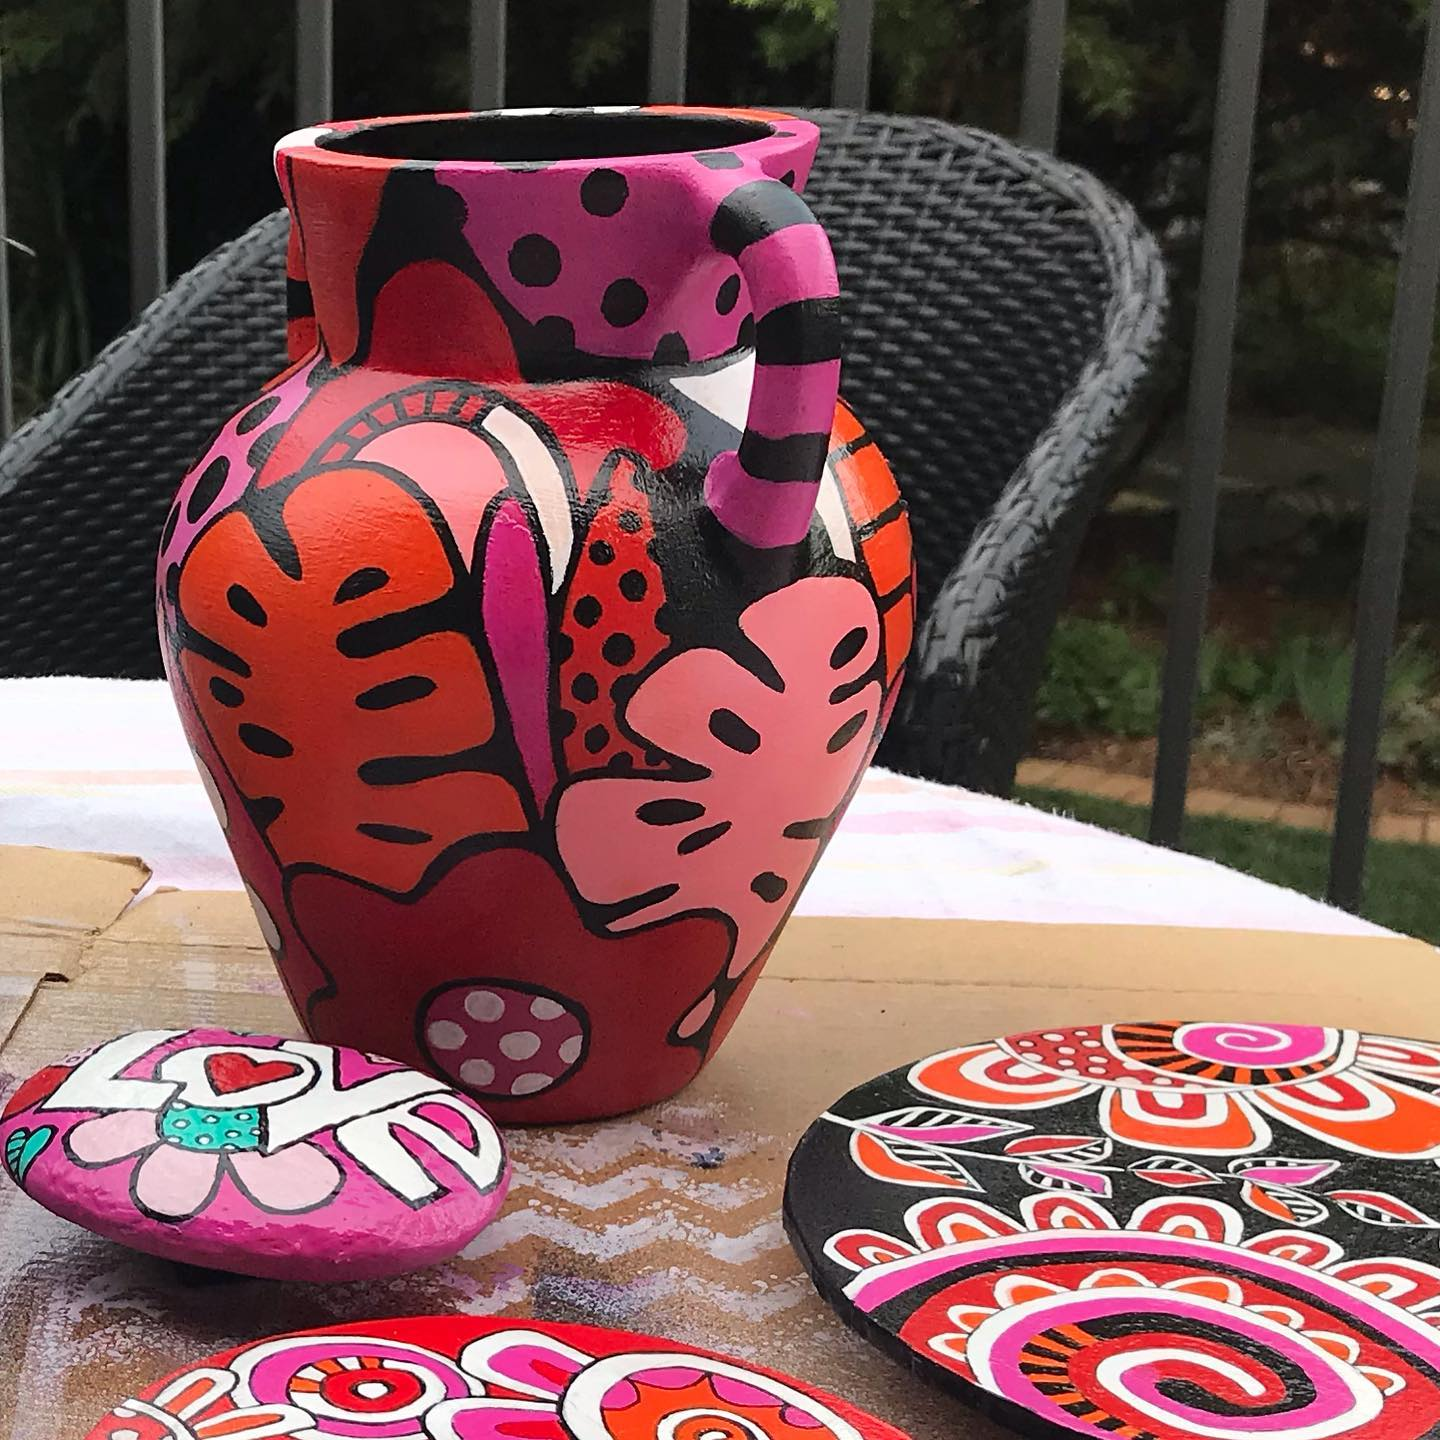 Painted pots & things